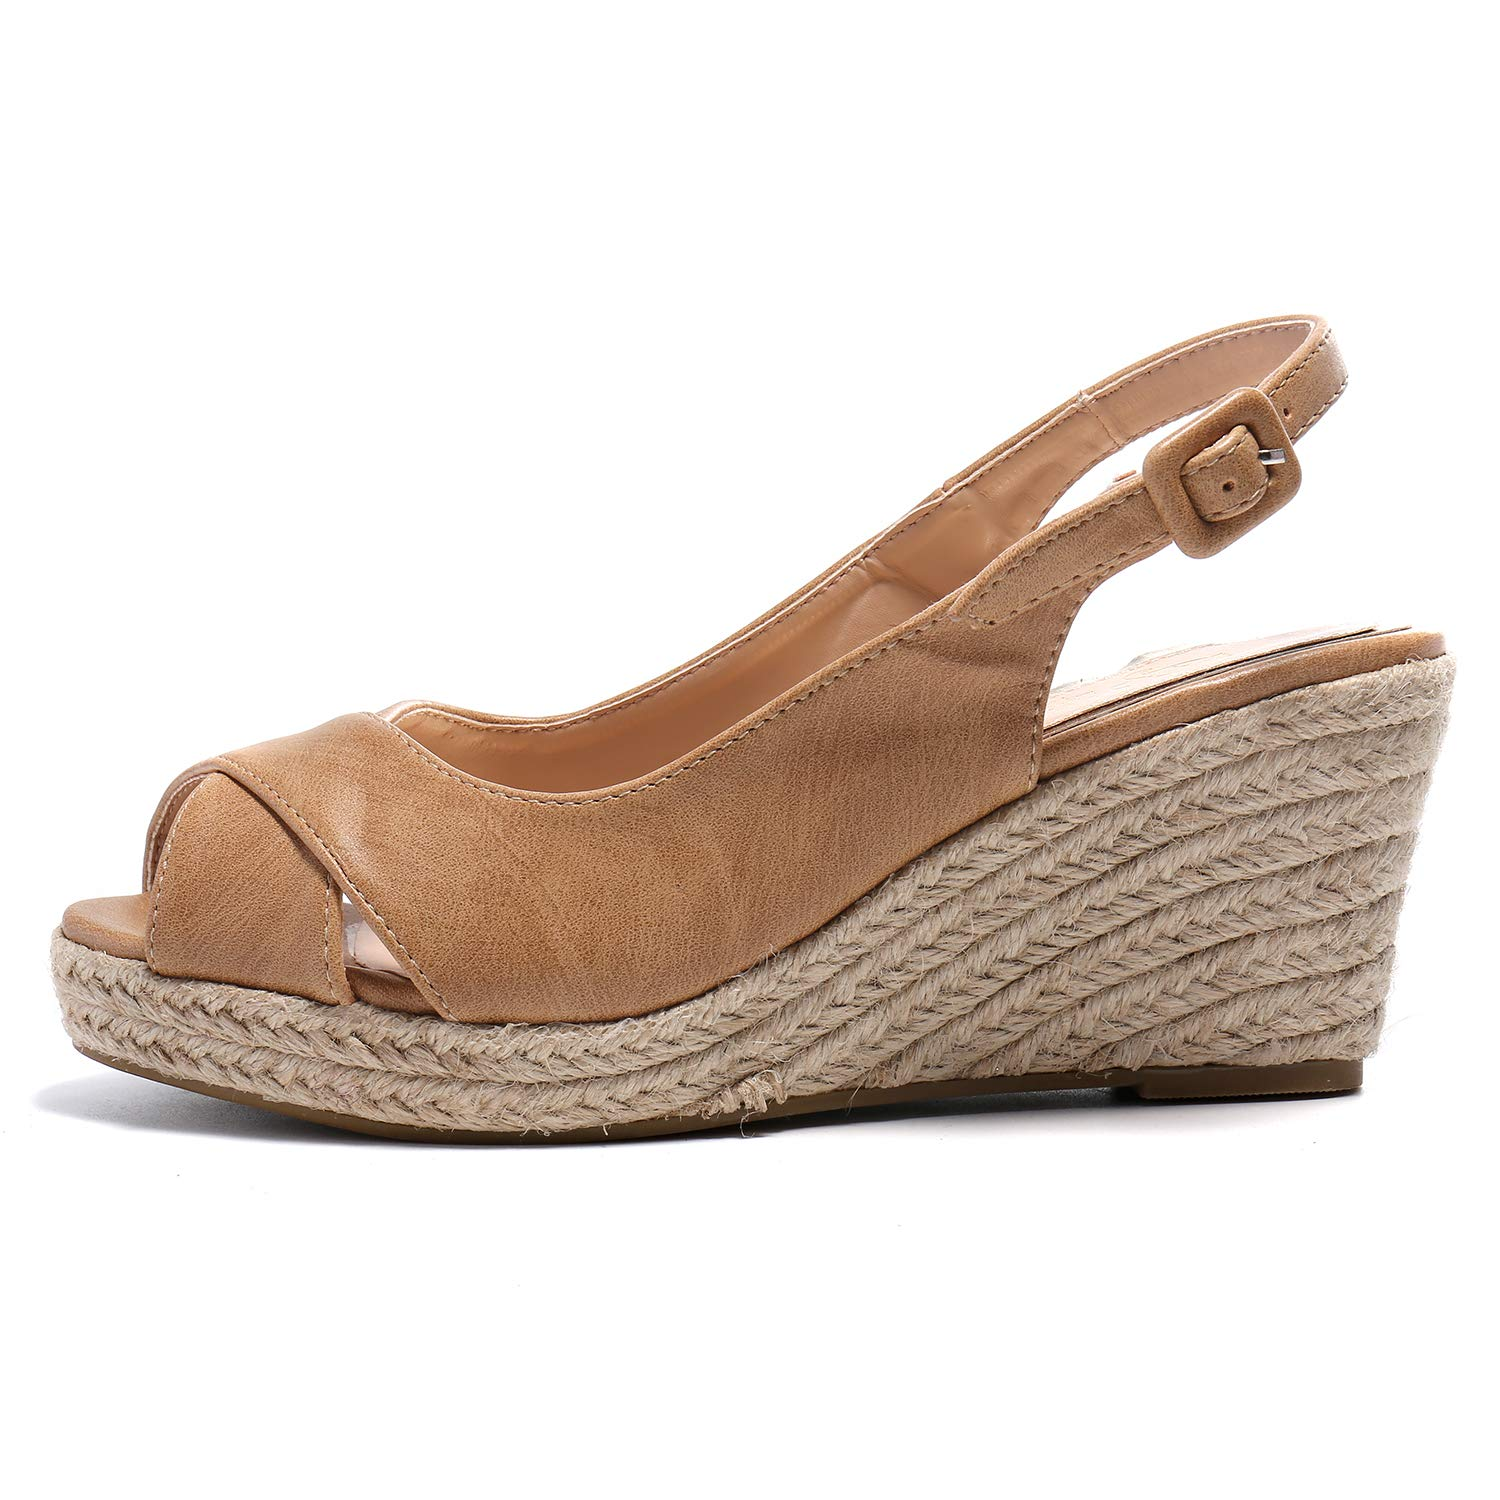 80be37634e5 Alexis Leroy Women's Peep Toe Crisscross Strappy Slingback Espadrilles  Wedge Sandals